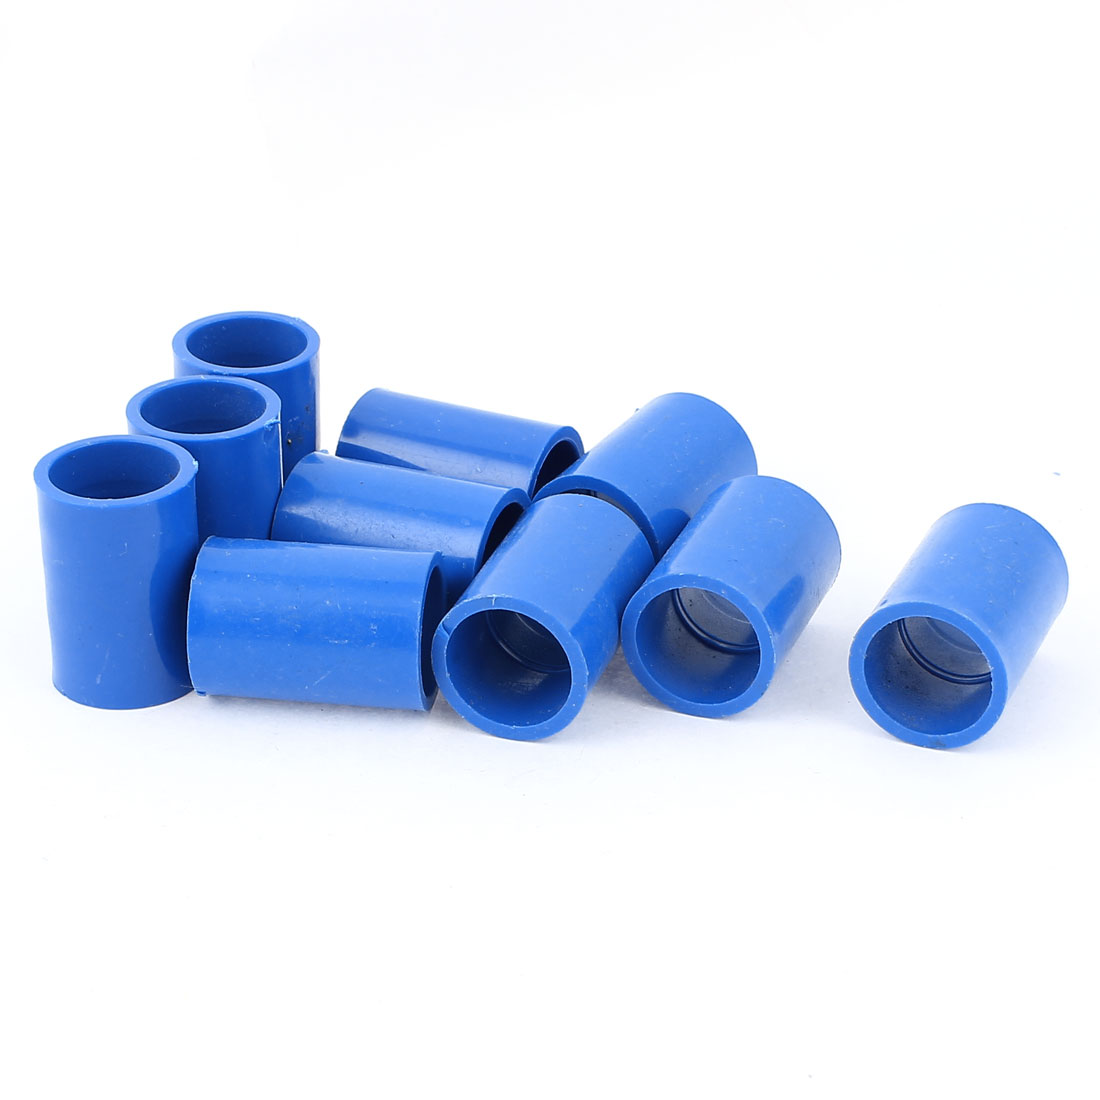 10Pcs 20mm Inner Dia U-PVC Straight Water Pipe Hose Joint Connector Blue